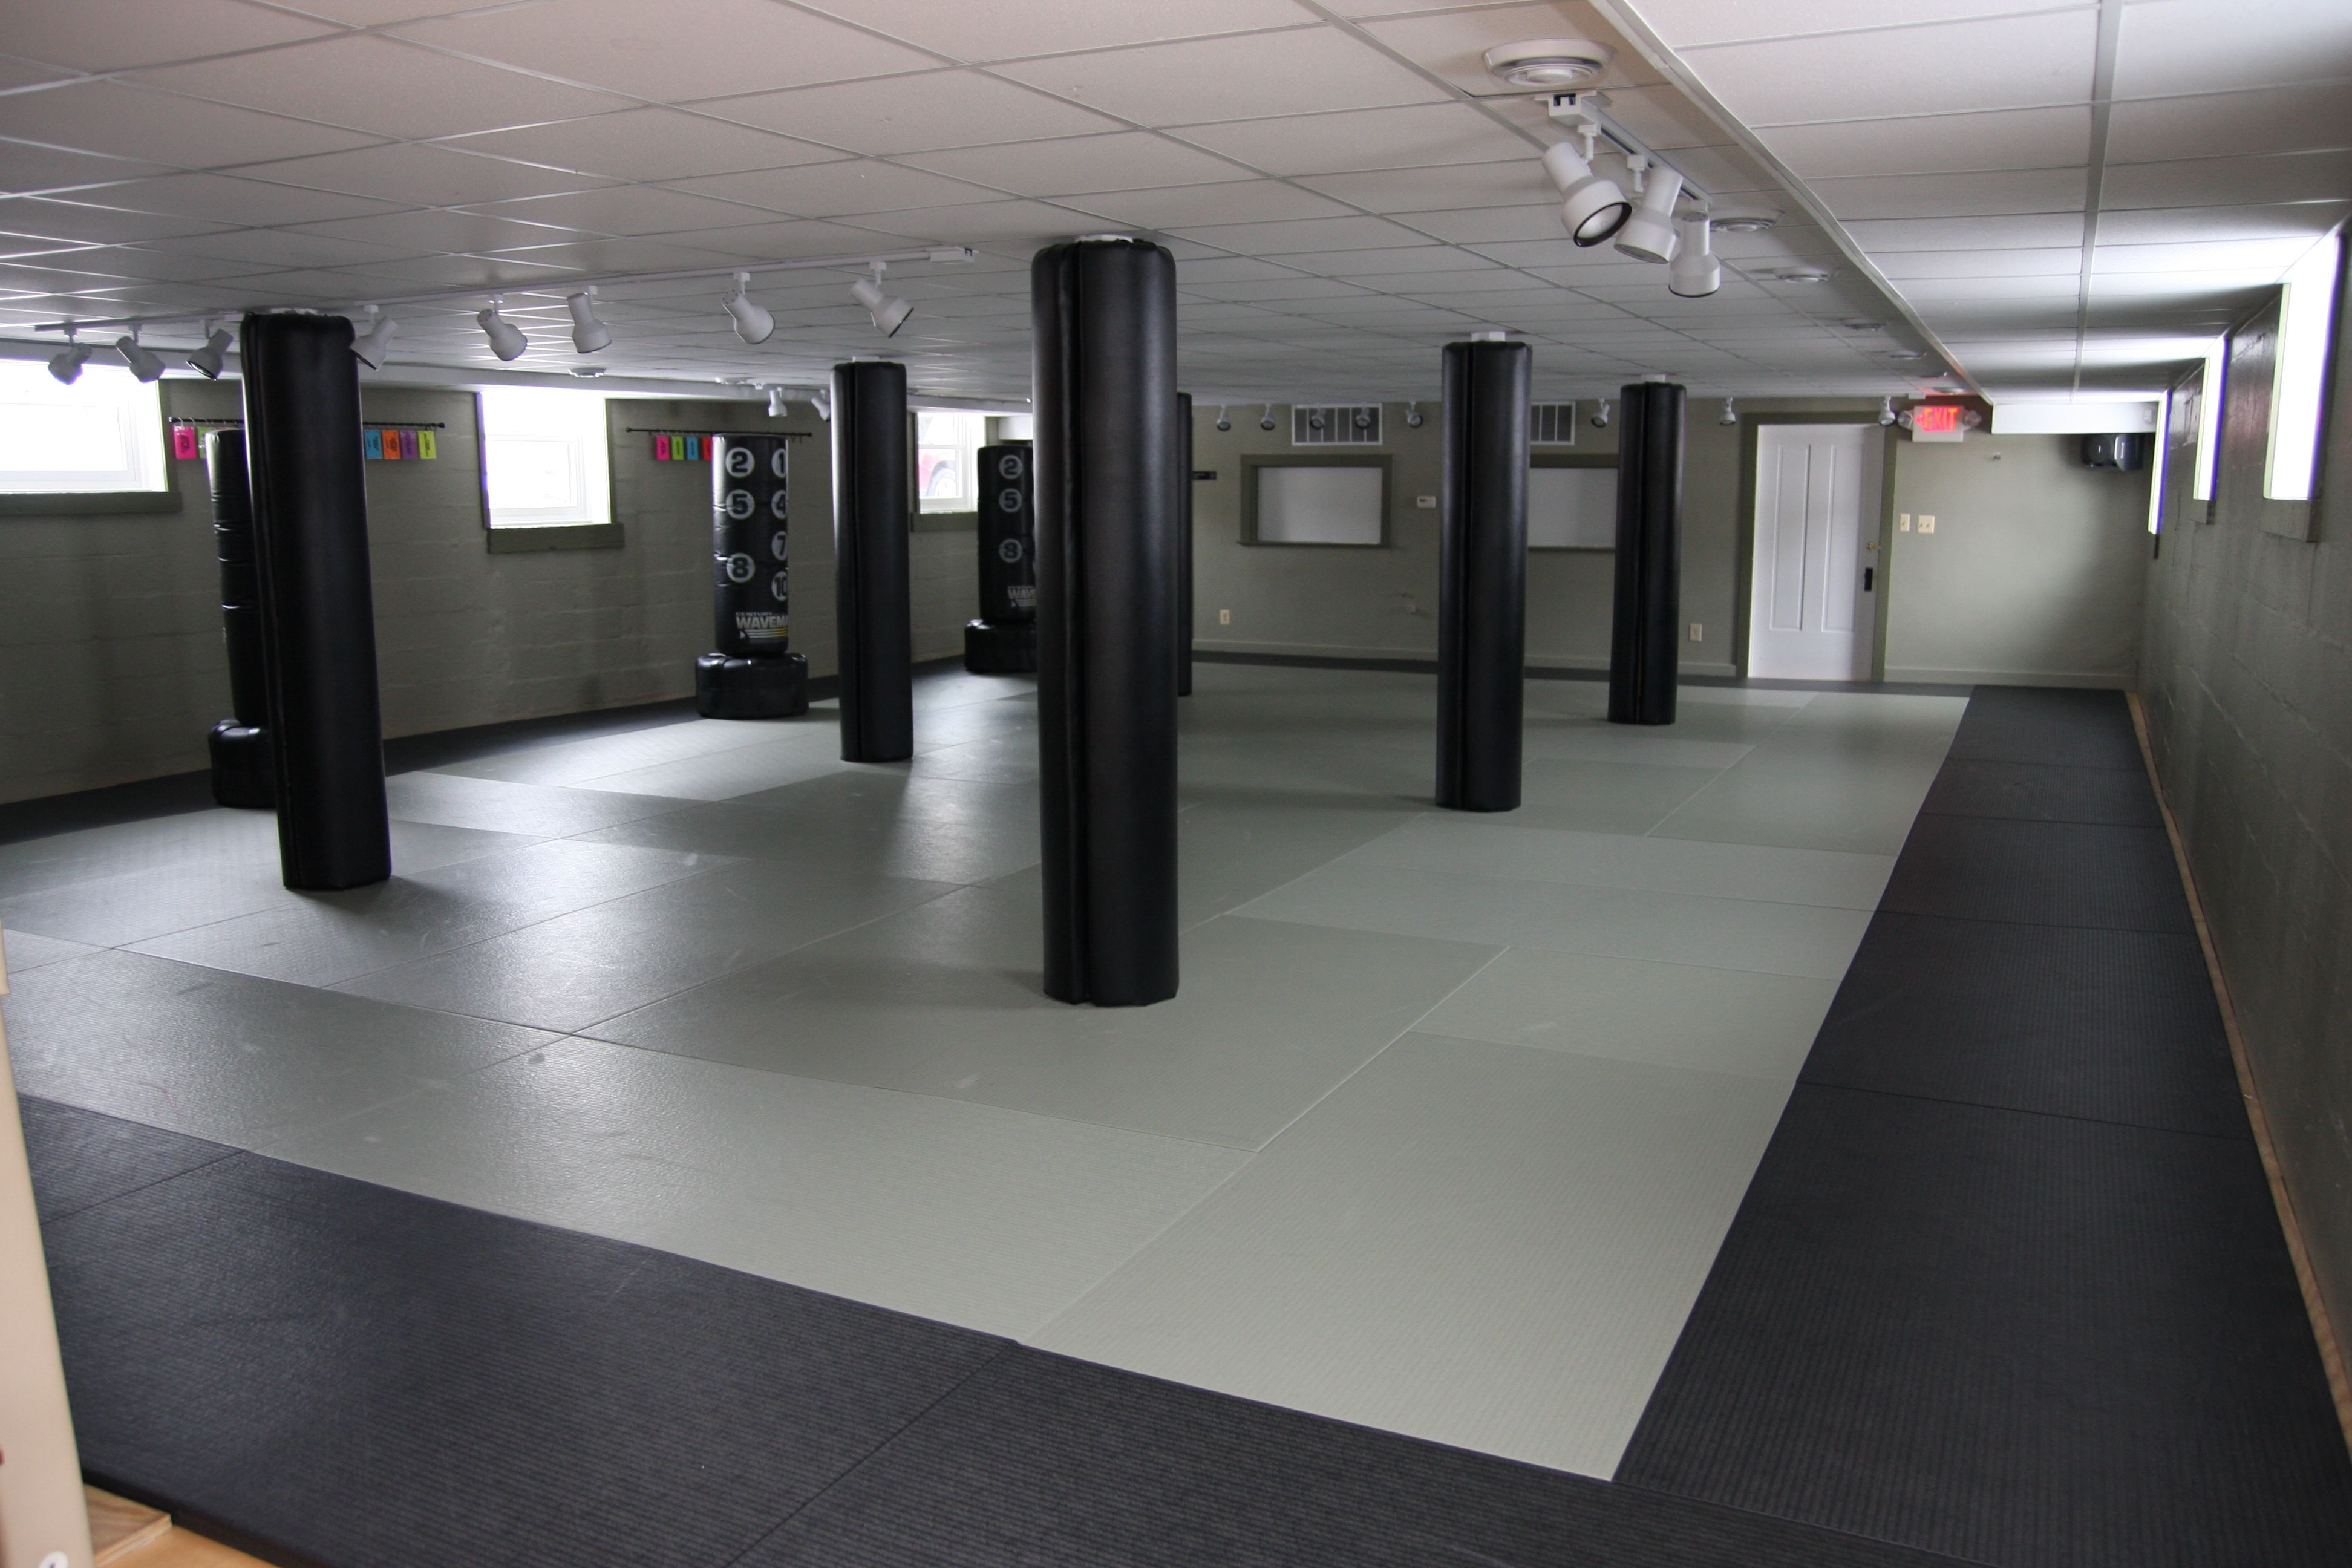 The lower level training area